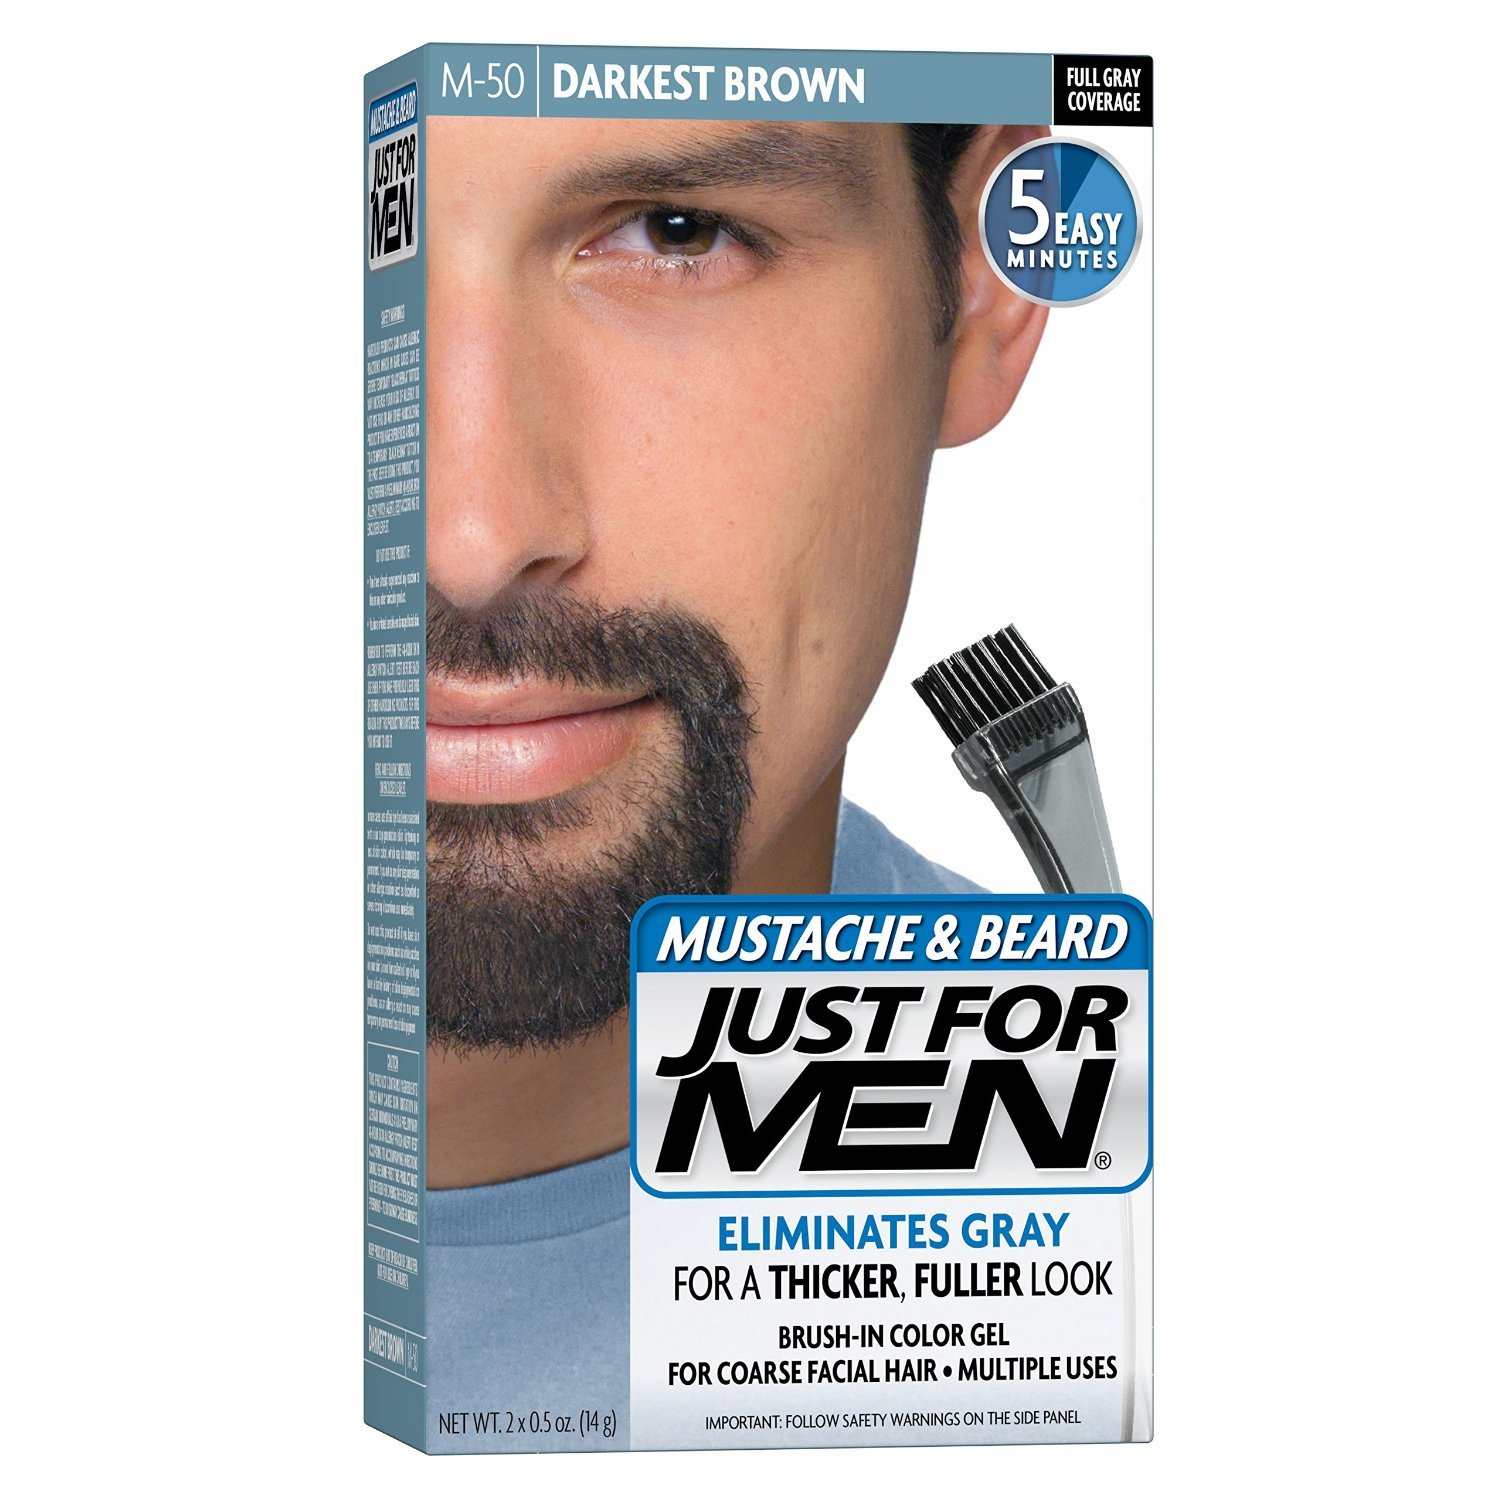 Amazon.com : Just For Men Brush-In Color Mustache & Beard - Medium ...